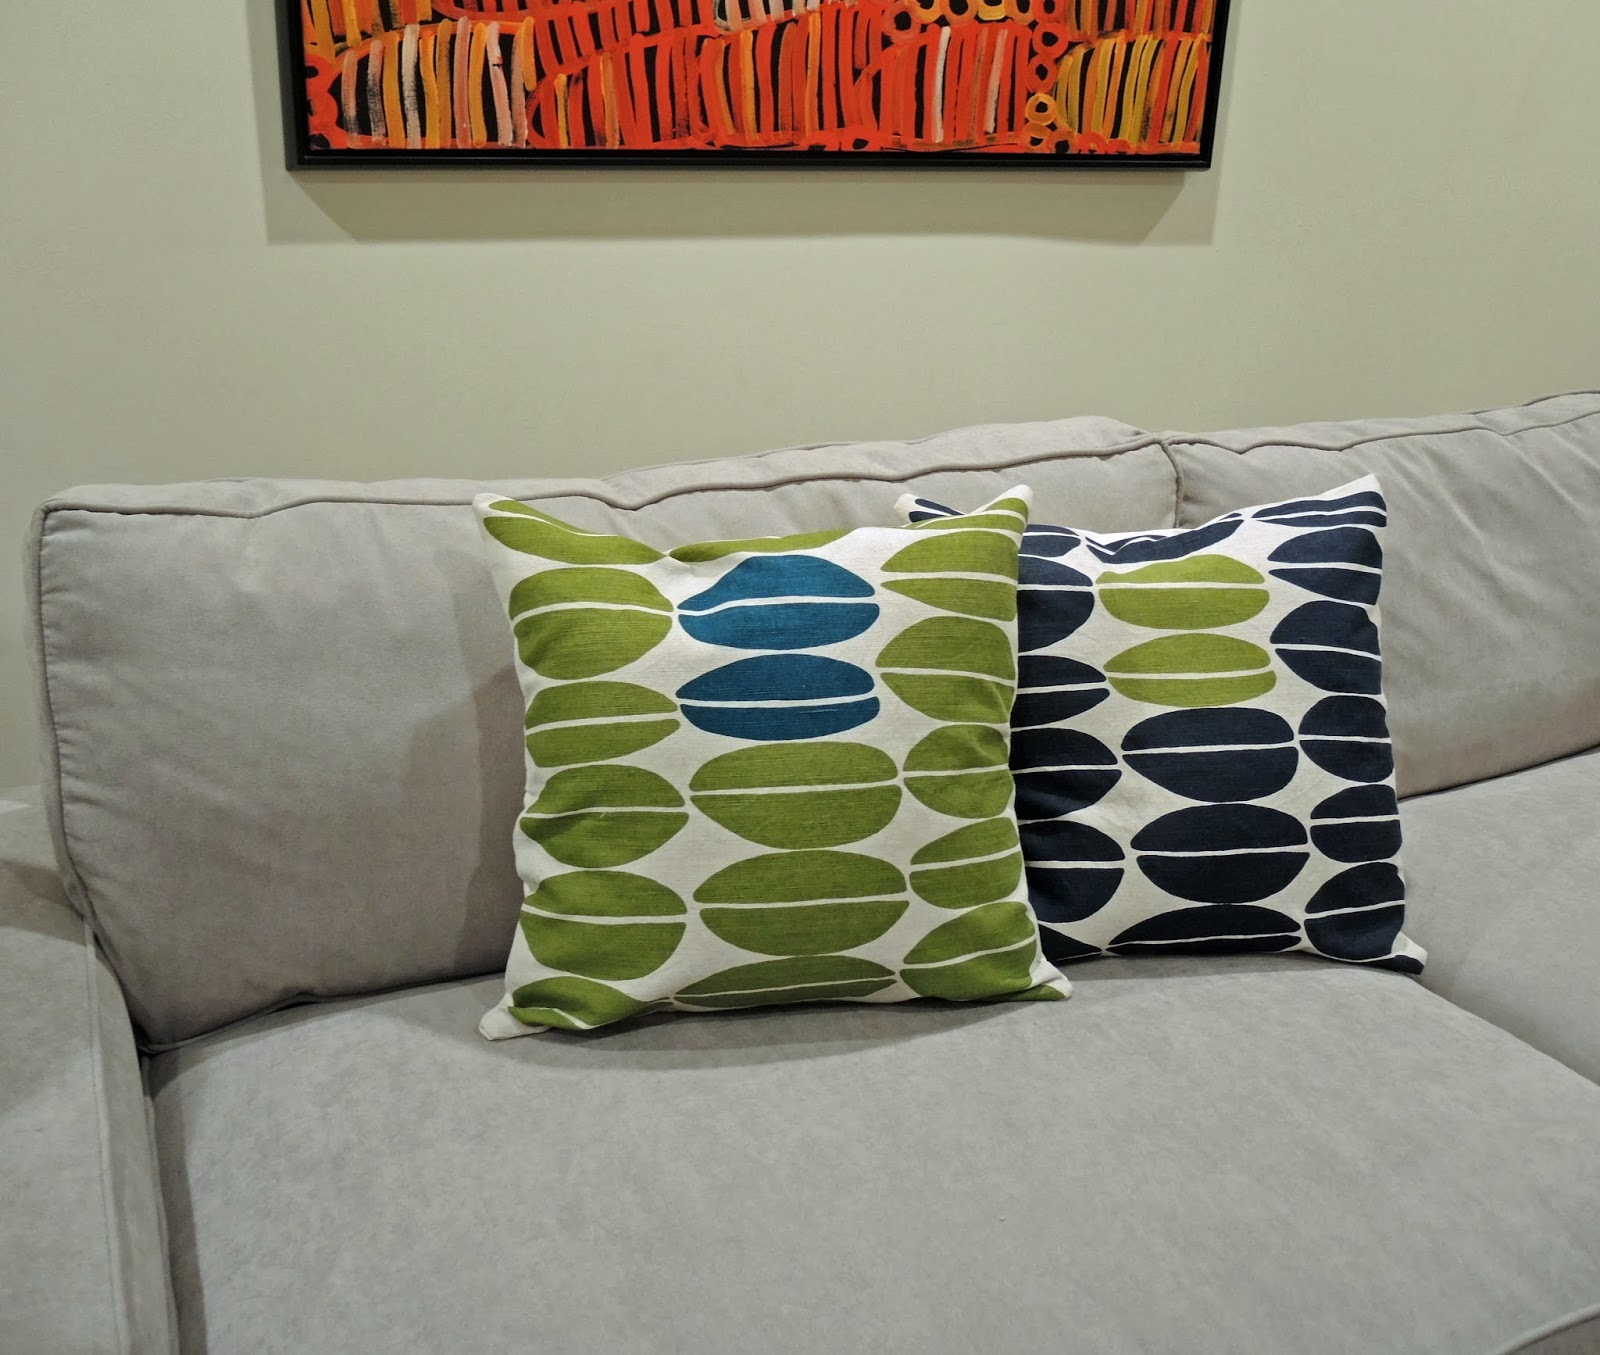 How To Make A Decorative Pillow With A Zipper : traceytoole: How to make: Throw pillow with zipper closure